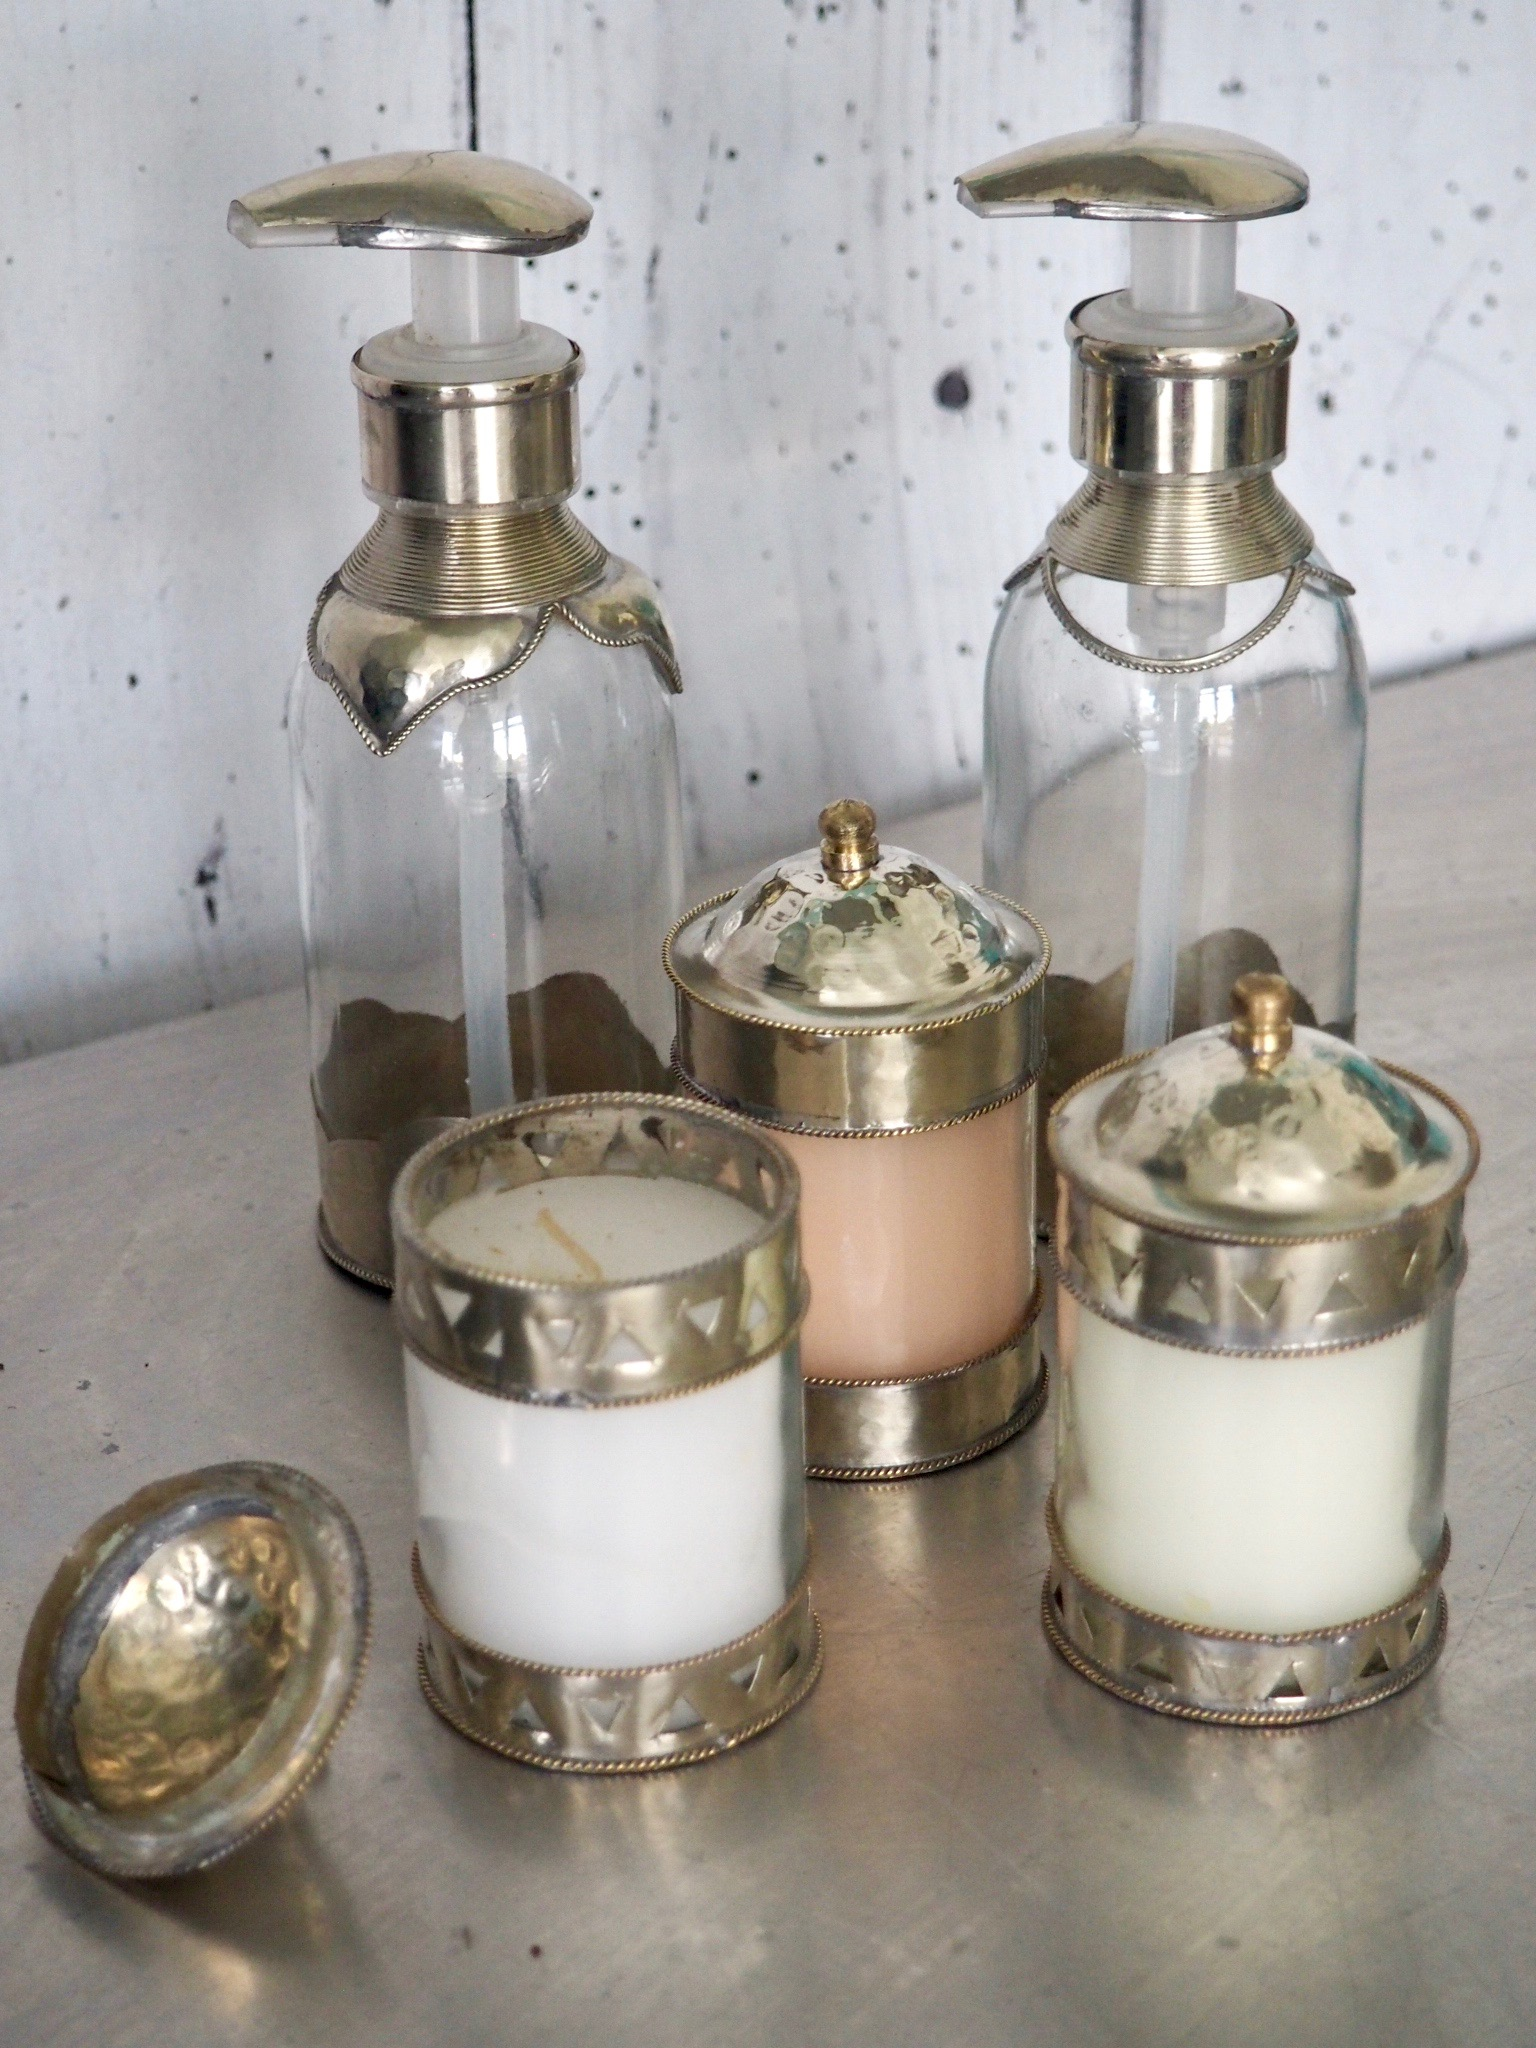 Love these candles and soap containers from Marrakech.